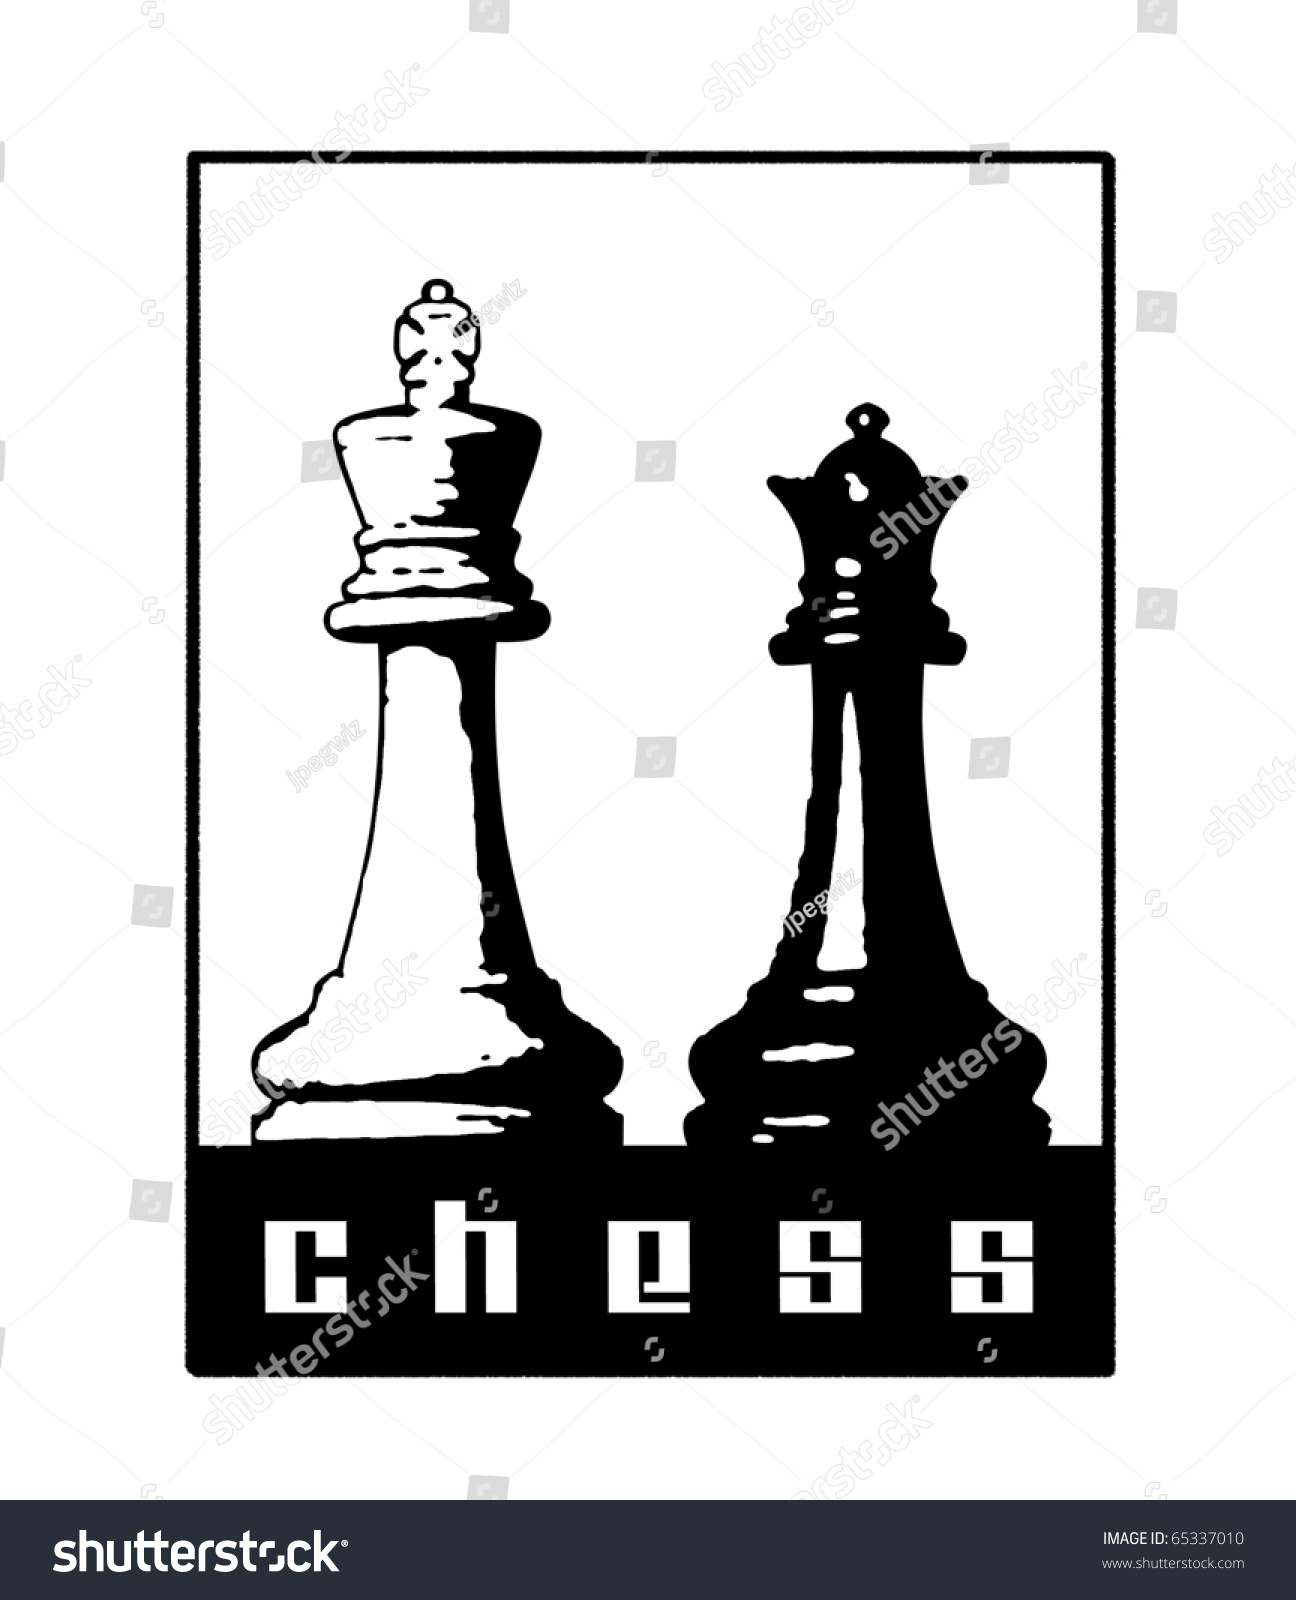 Chess symbol king queen pieces stock illustration 65337010 chess symbol with king and queen pieces biocorpaavc Gallery